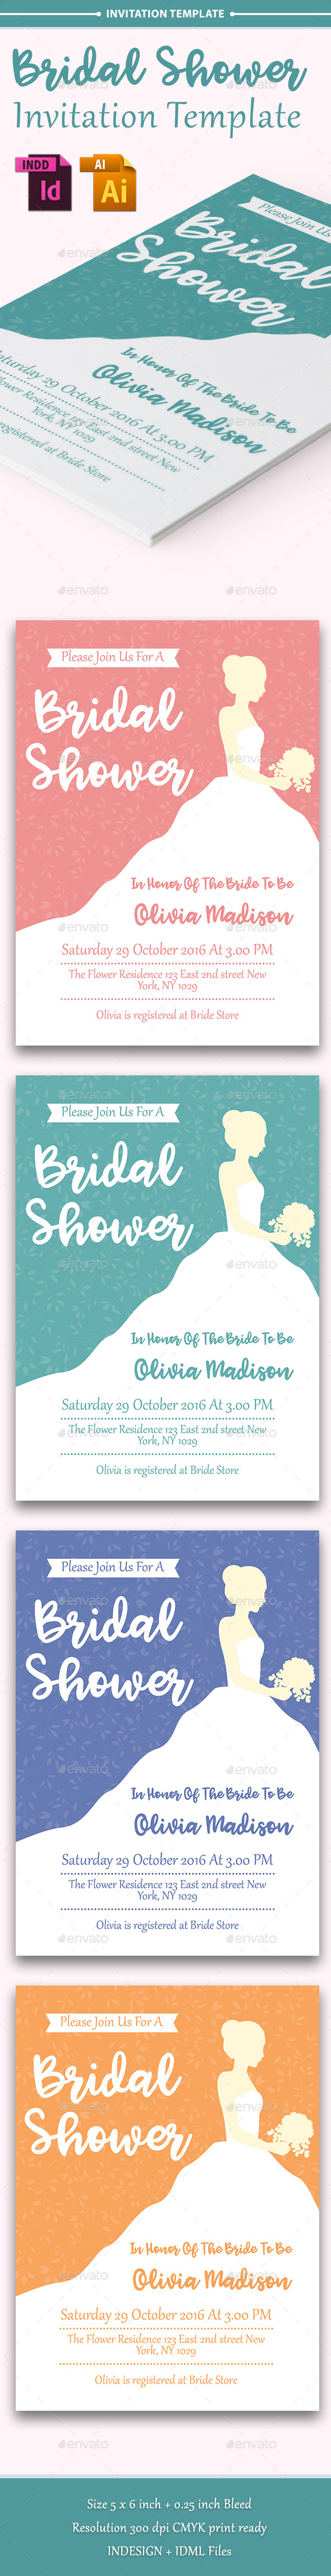 Bridal Shower Invitation Template - Vol. 2 - Cards & Invites Print Templates